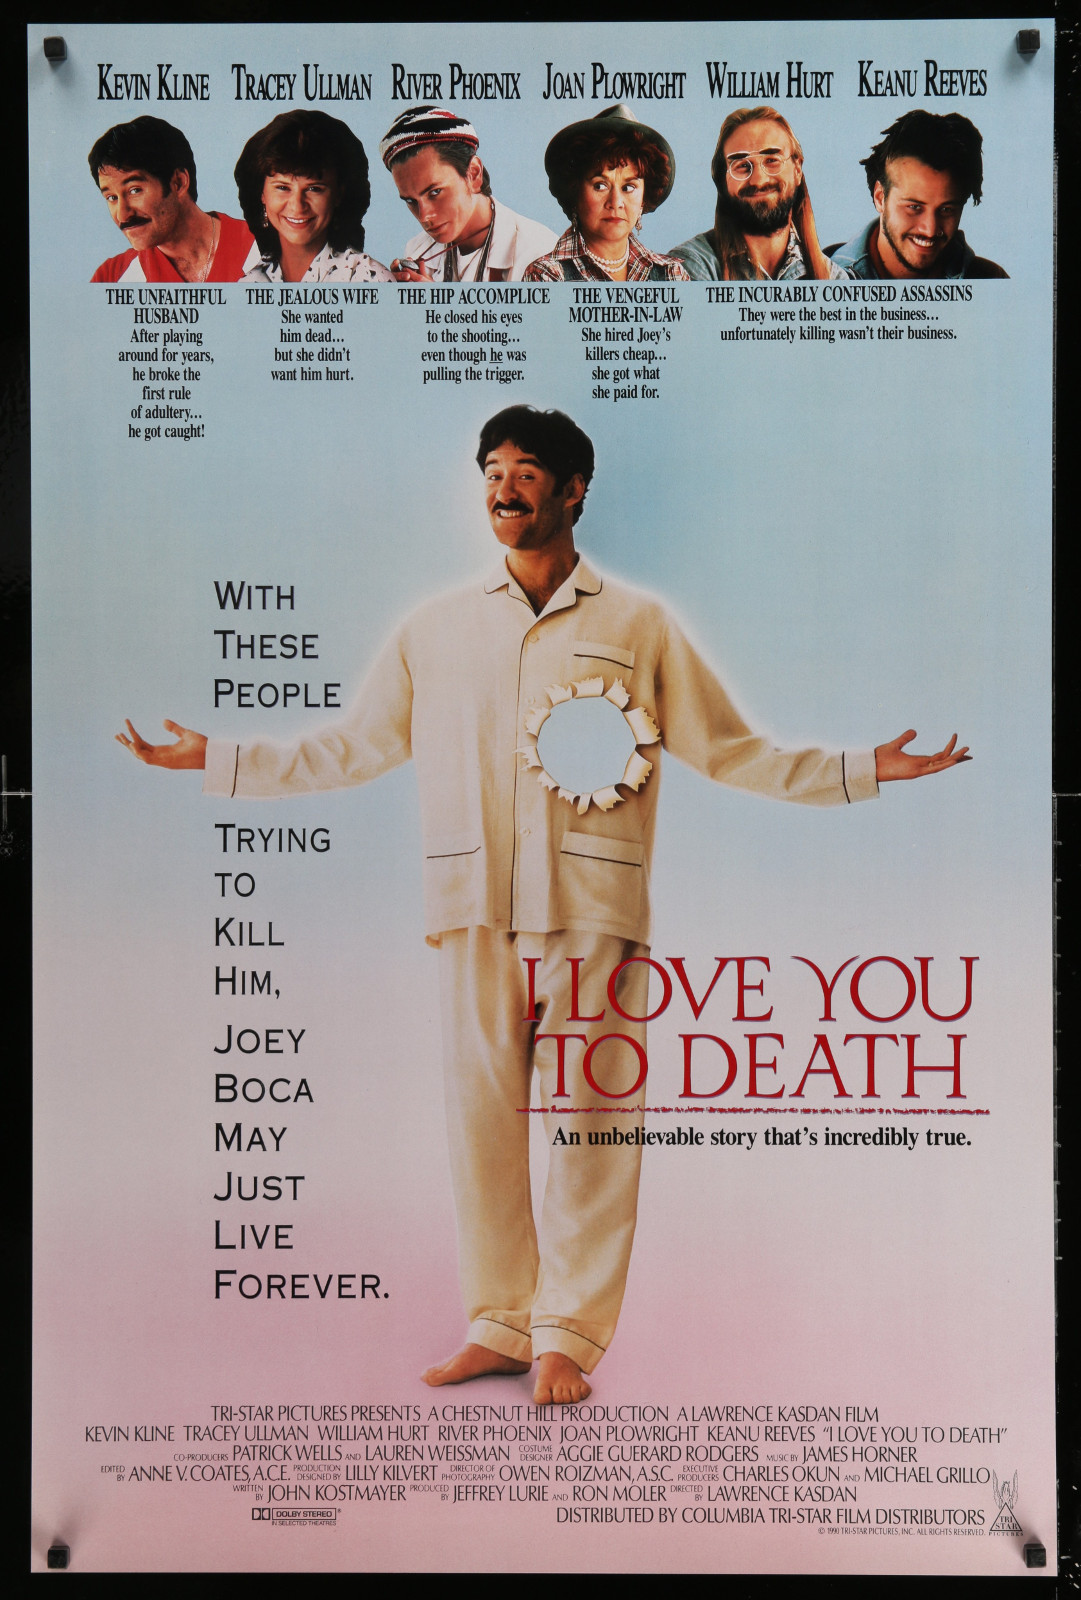 I Love You To Death 2A414 A Part Of A Lot 20 Unfolded Double-Sided And Single-Sided One-Sheets '80S-90S Great Movie Images!